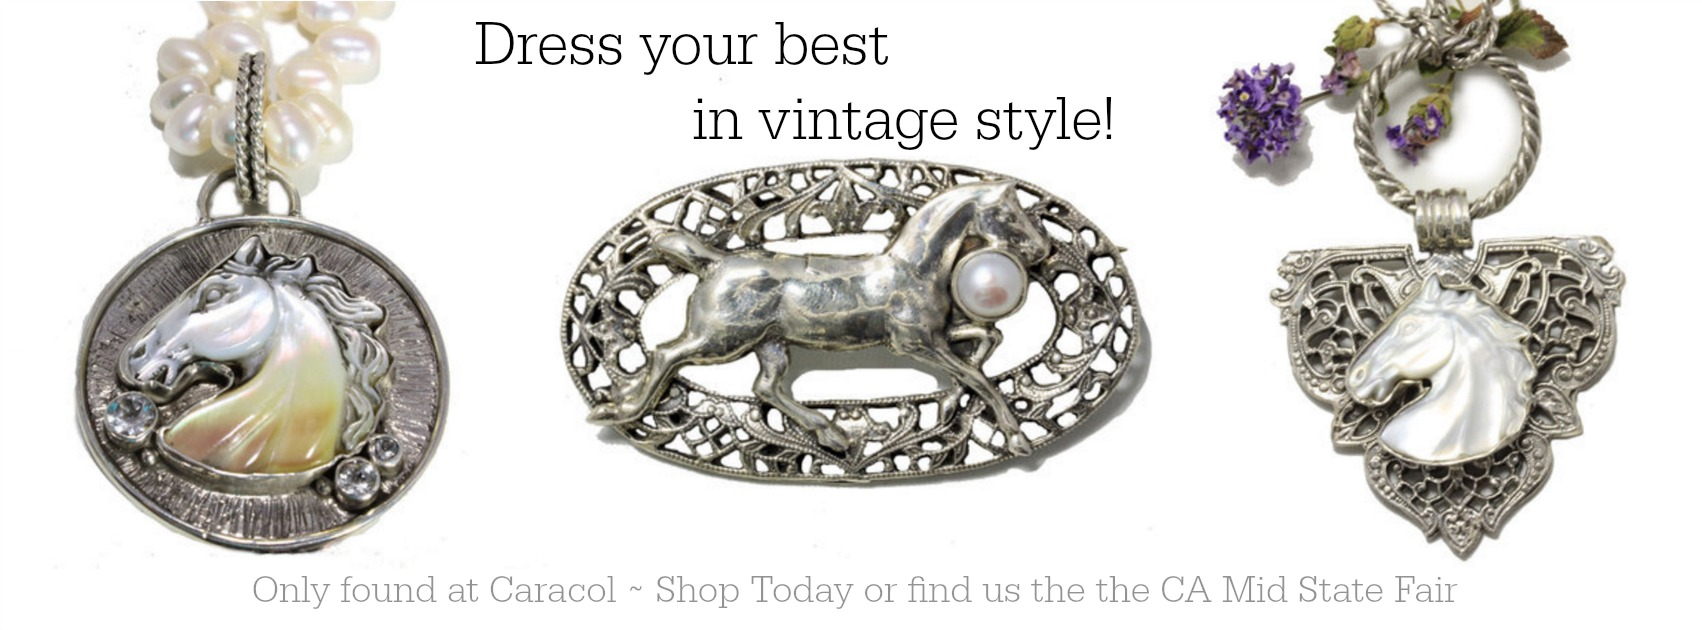 Equestrian Inspired Vintage Jewelry by Caracol